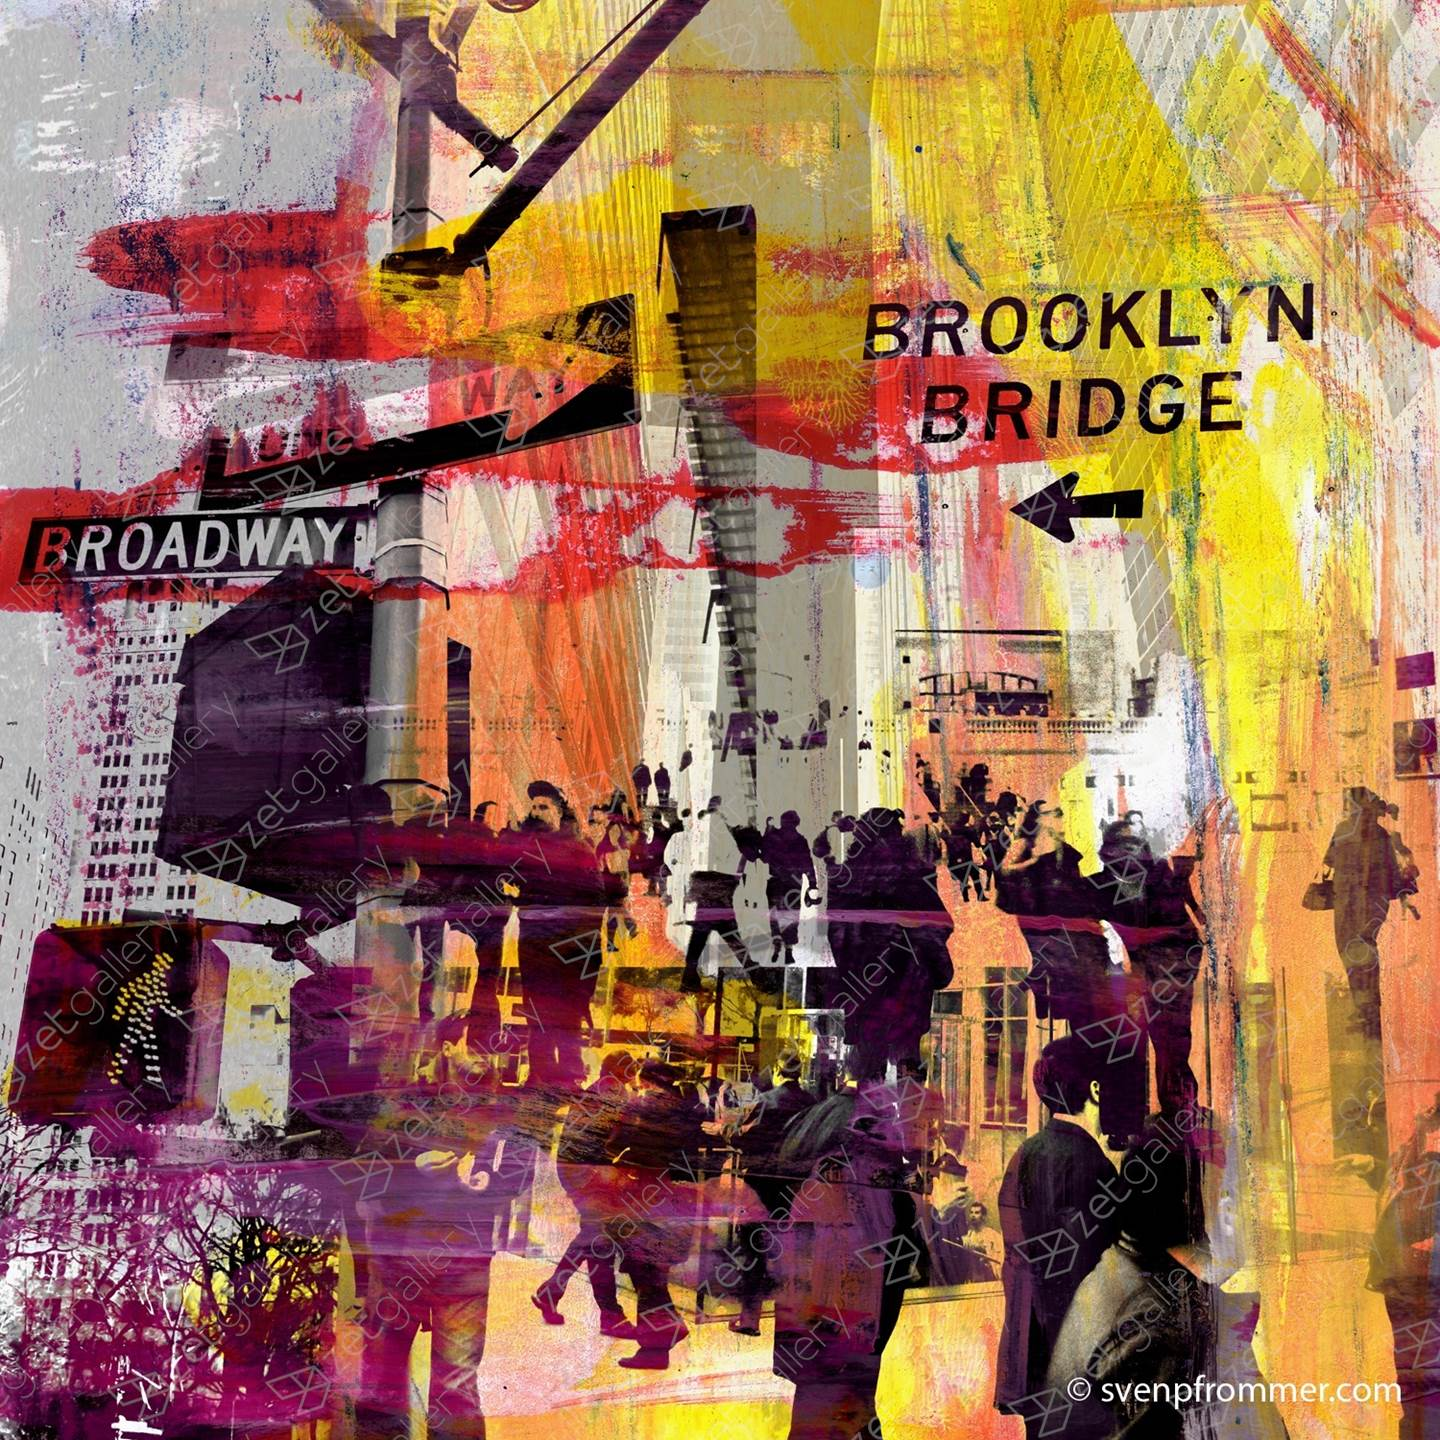 NEW YORK DOWNTOWN X, original Abstract Digital Photography by Sven Pfrommer